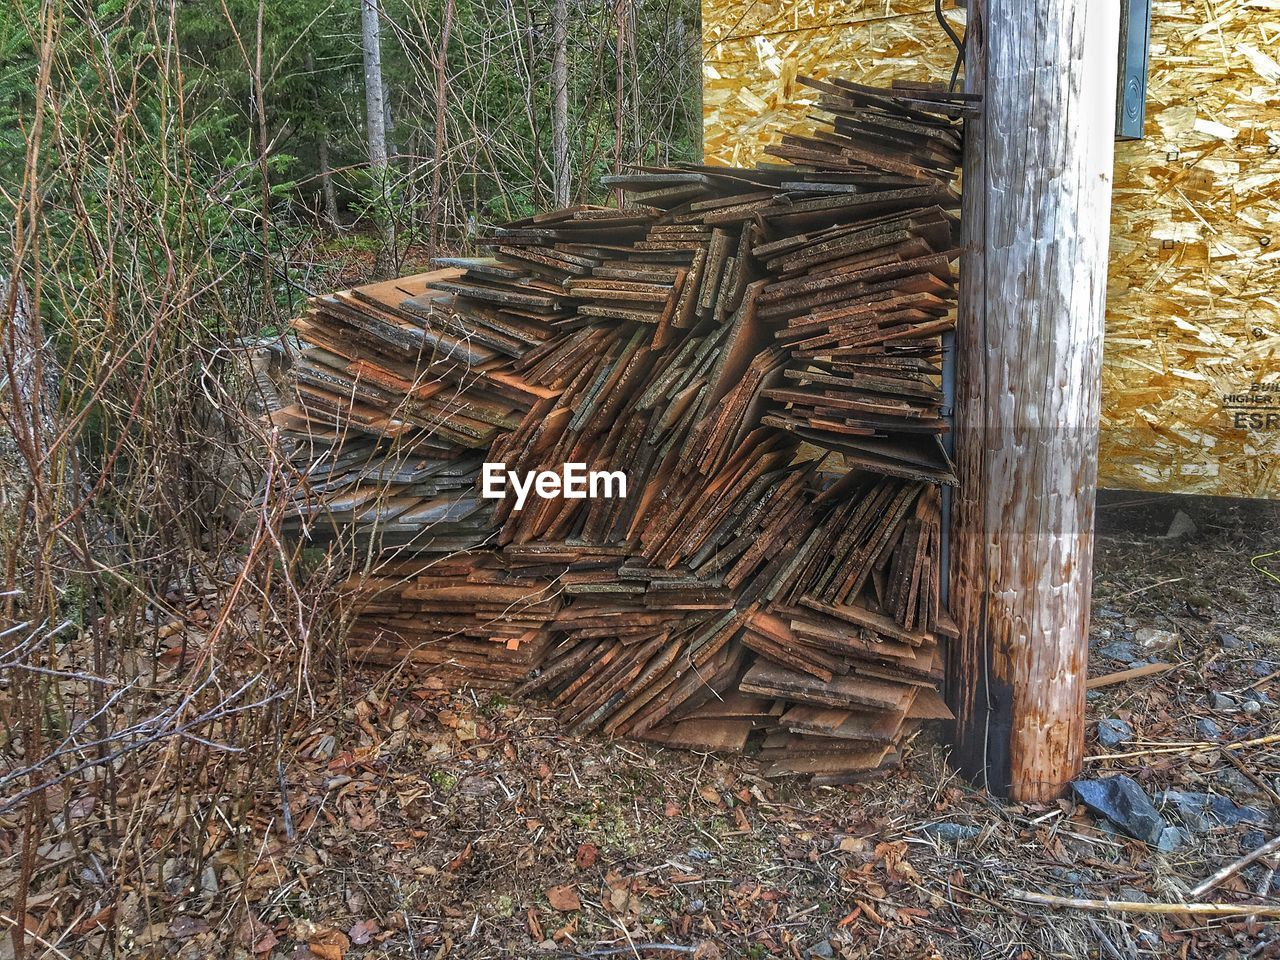 stack, lumber industry, wood - material, deforestation, environmental issues, log, timber, no people, field, tree trunk, day, heap, outdoors, woodpile, large group of objects, forestry industry, grass, nature, tree, close-up